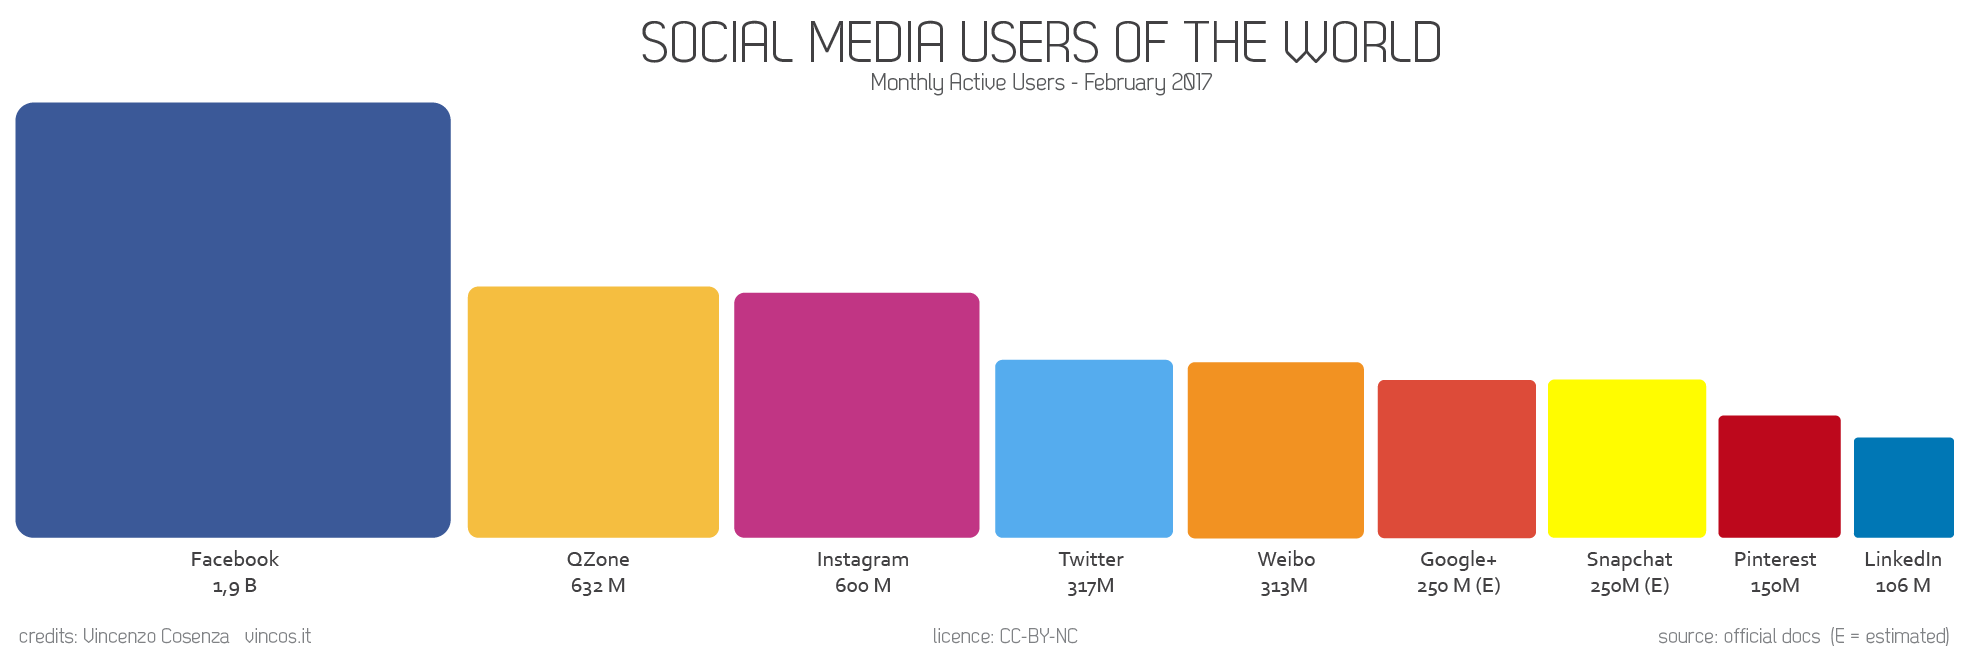 social media users of the world